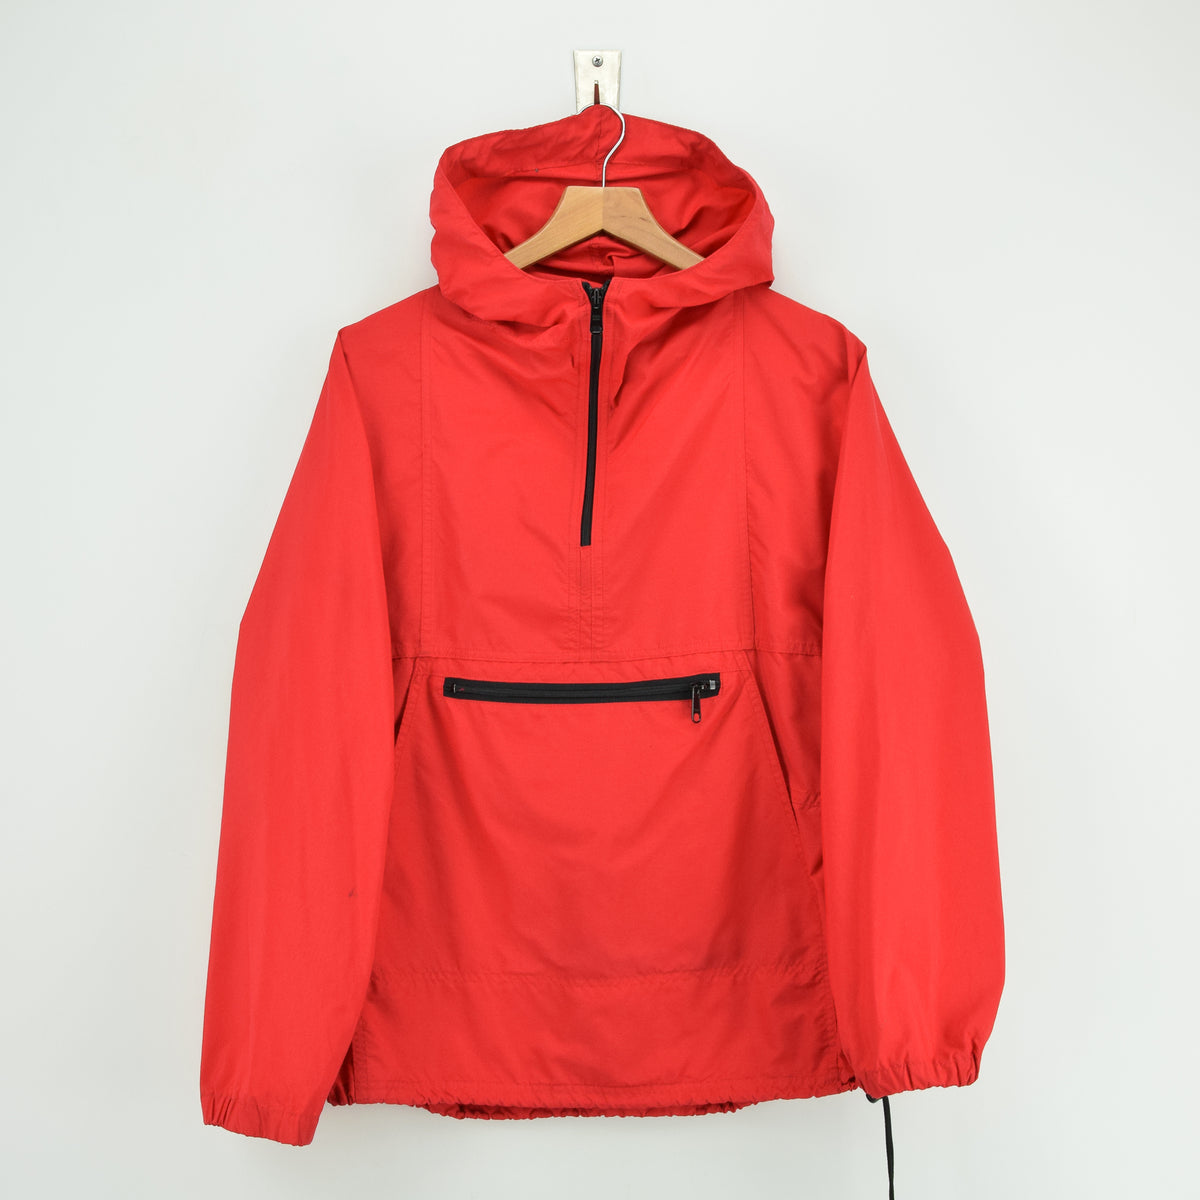 Vintage LL Bean Red Hooded Nylon Cagoule Unisex Jacket Made in USA S front